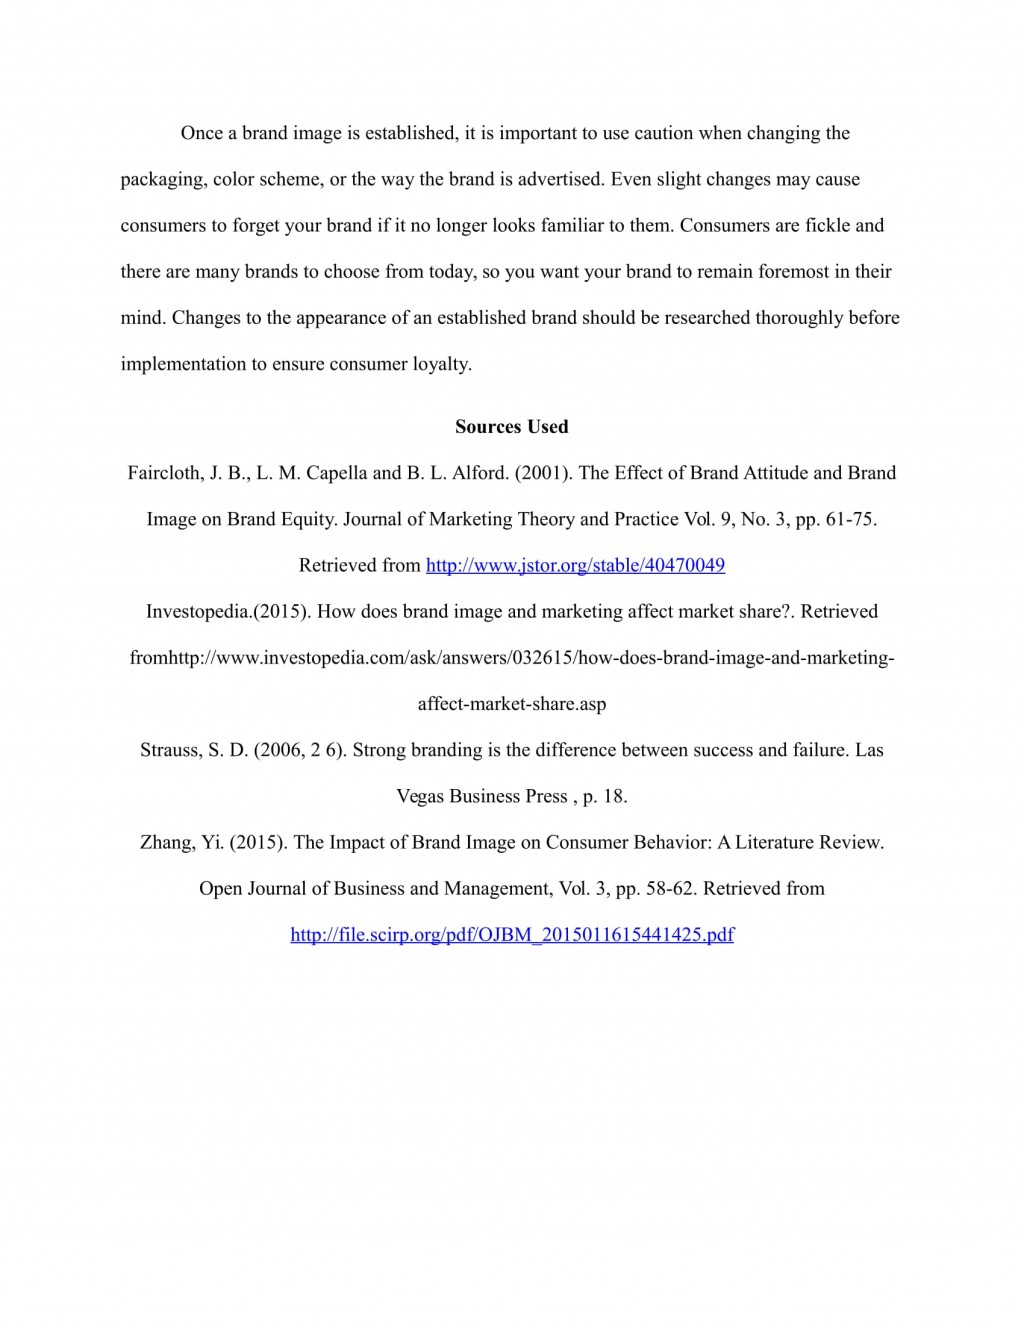 007 Expository Essay Samples Sample 1 Impressive Theme Examples High School For 7th Grade Large